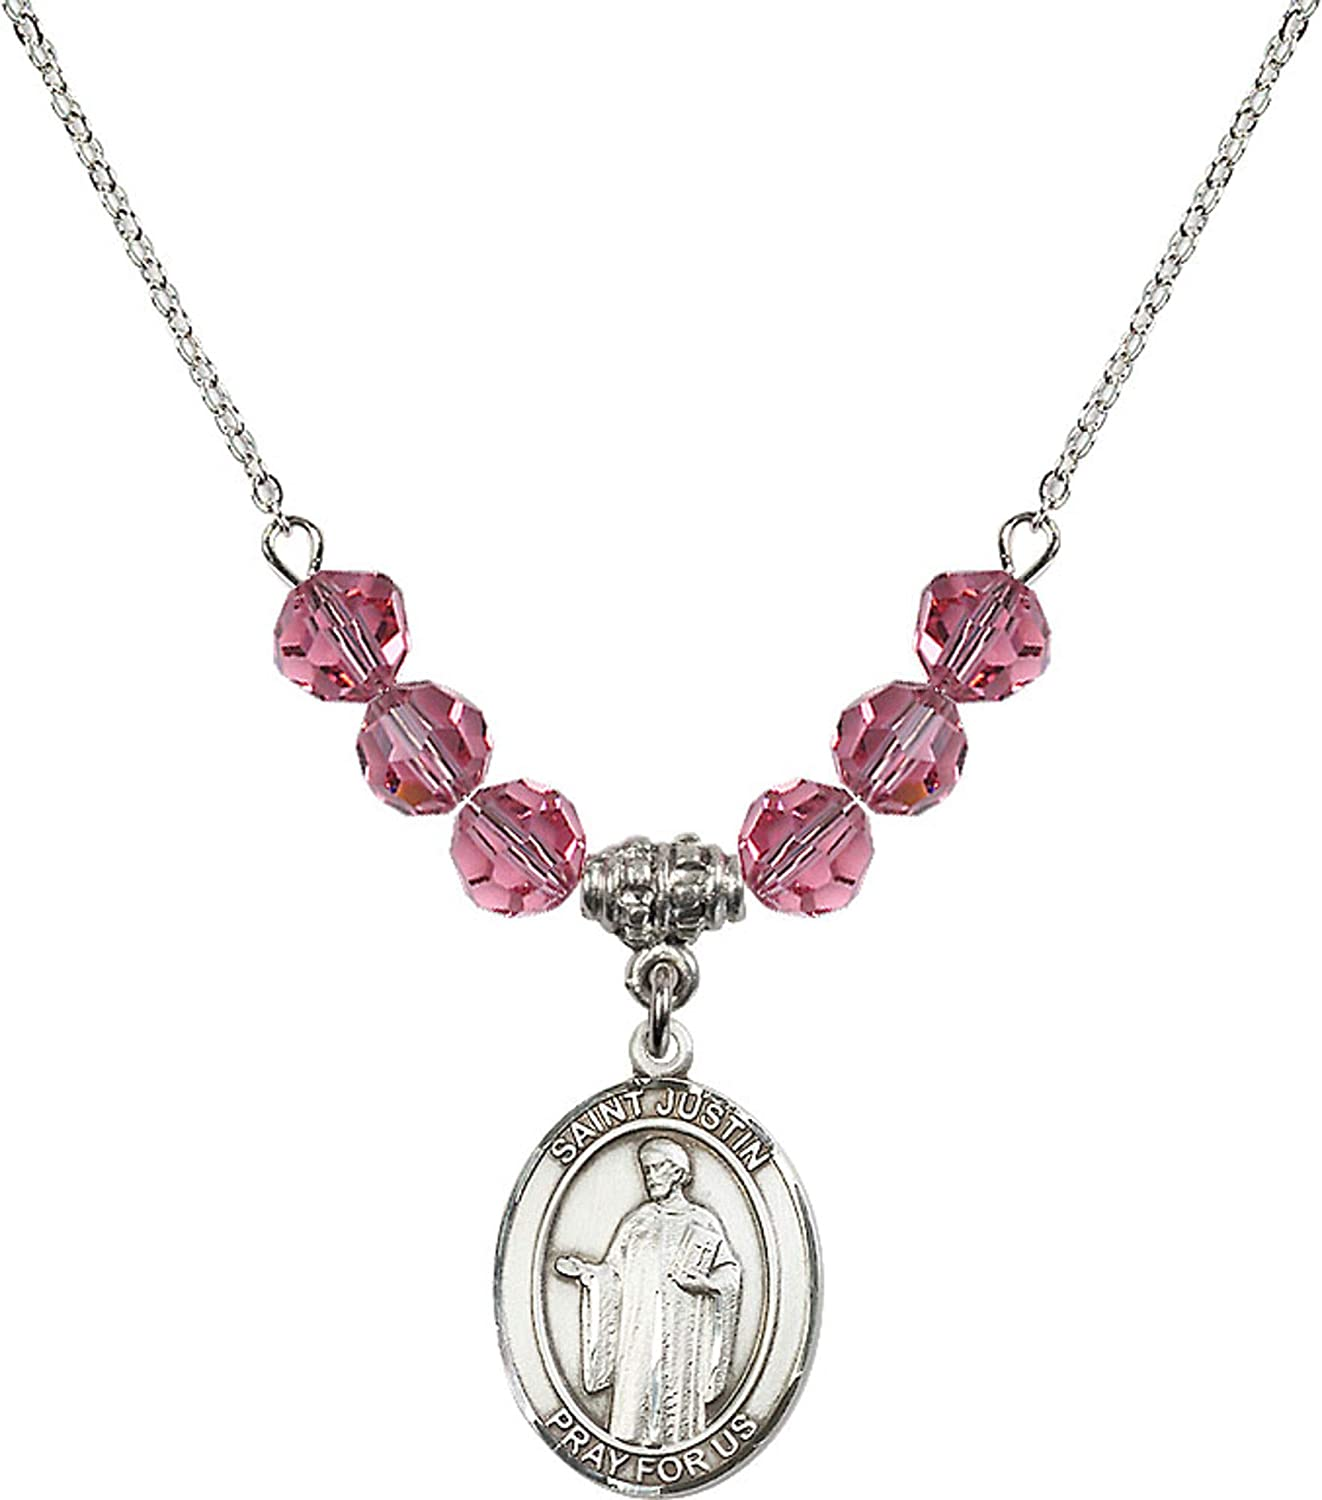 Bonyak Jewelry 18 Inch Rhodium Plated Necklace w// 6mm Rose Pink October Birth Month Stone Beads and Saint Justin Charm